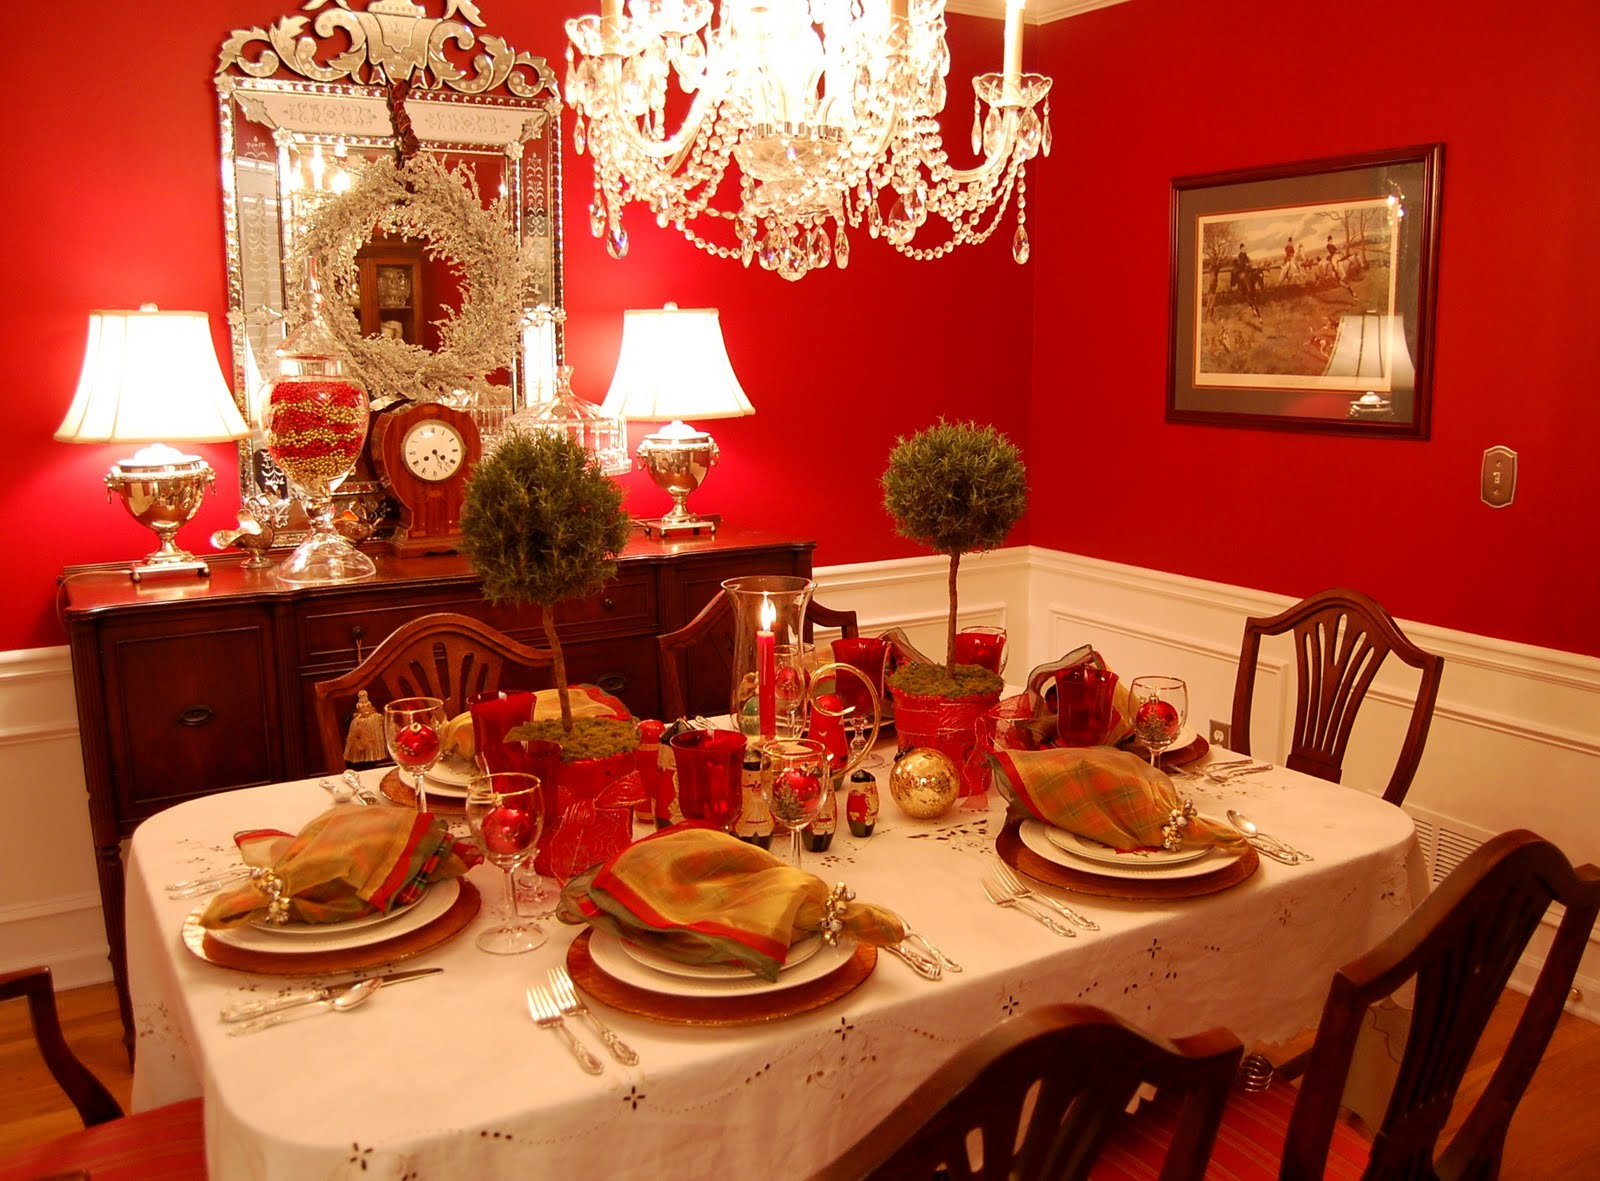 Christmas table decorations red and gold - Christmas Table Setting Tablescape With Topiary Centerpiece